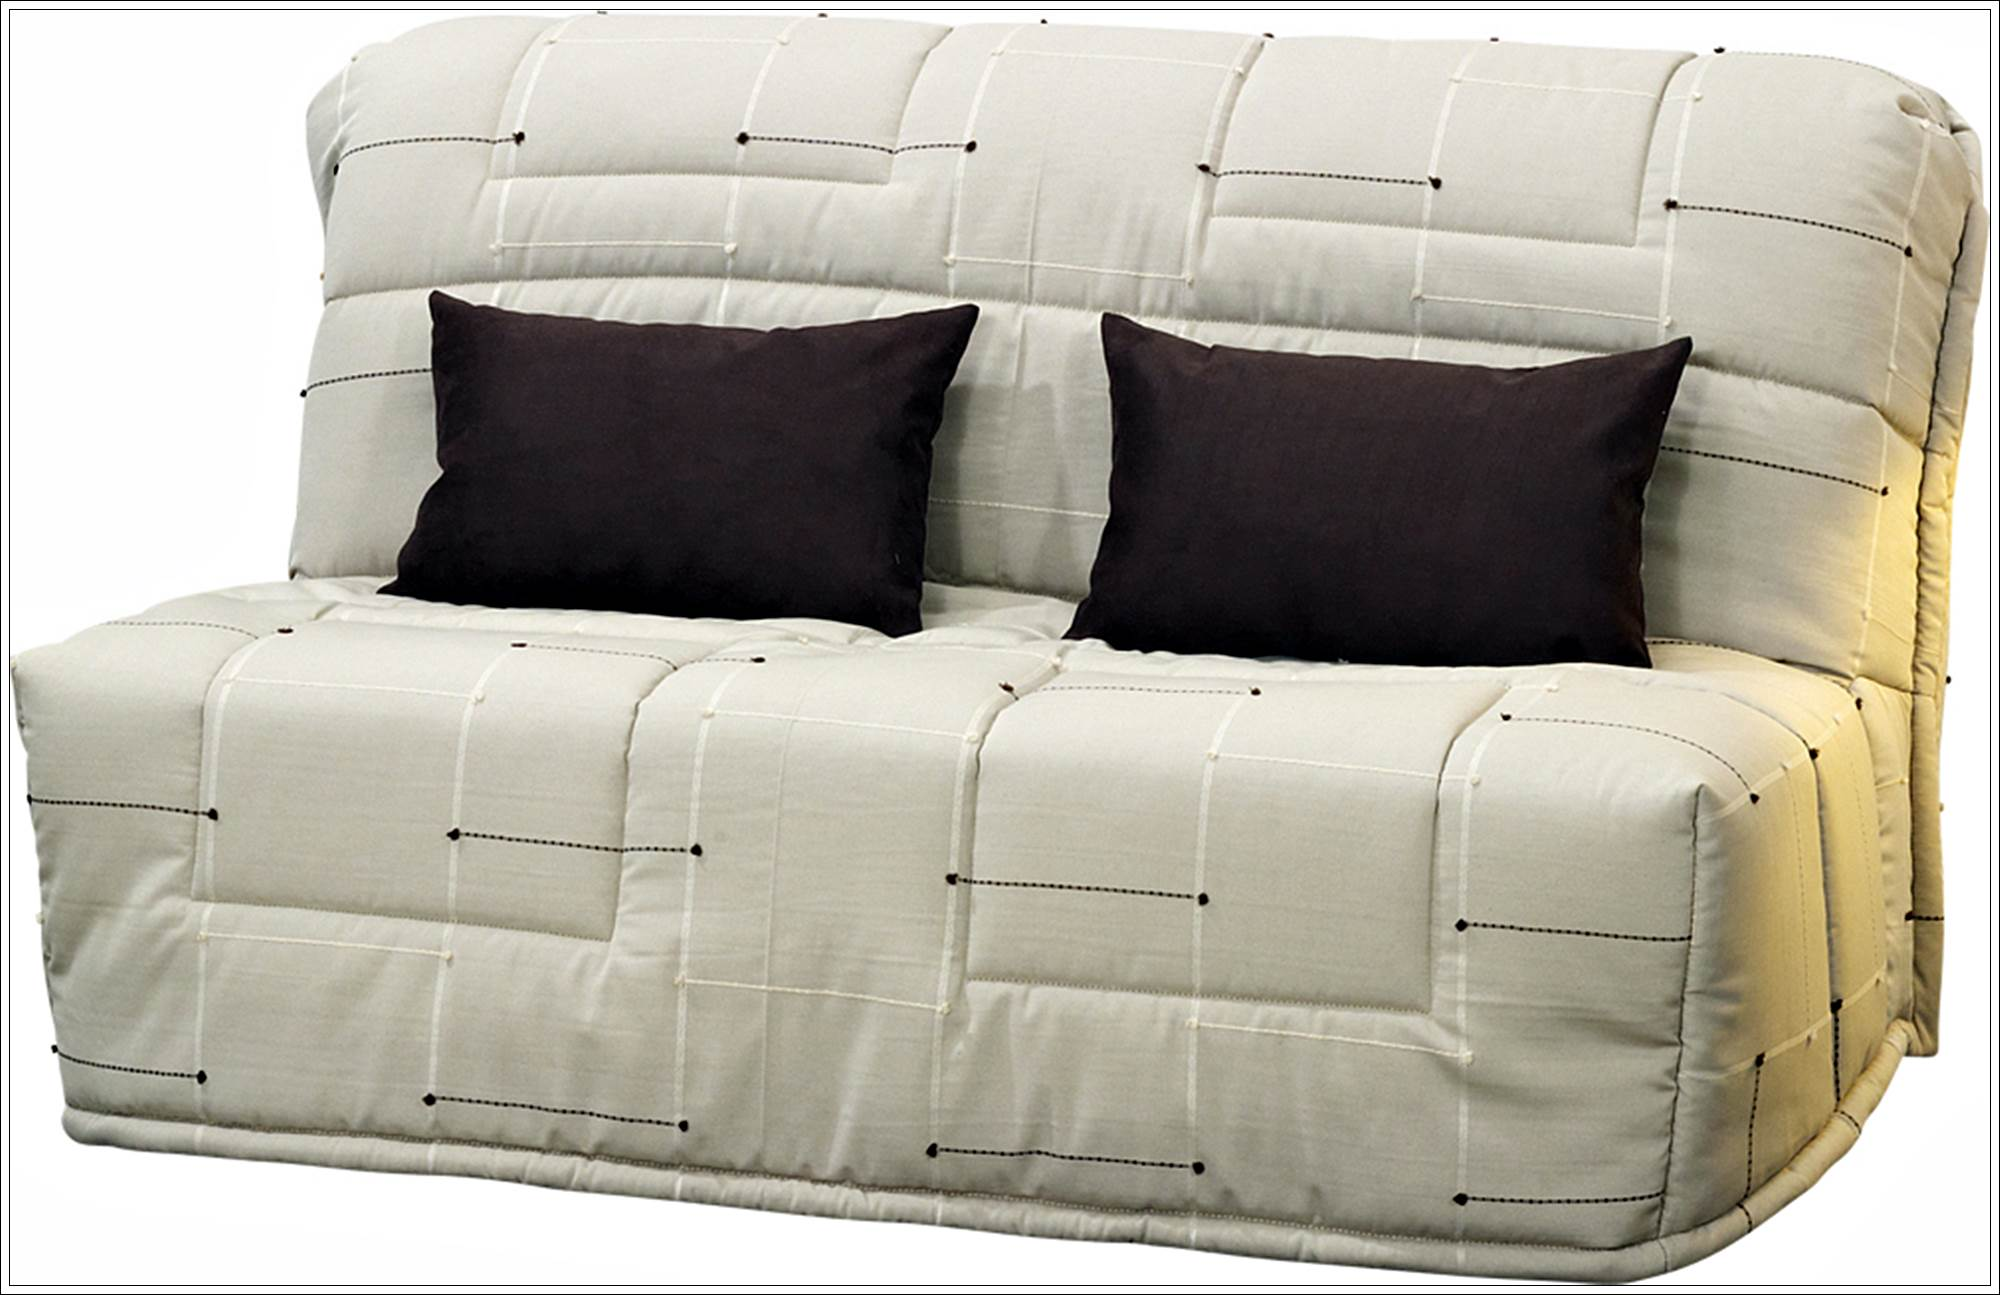 canap bz 160x200 ikea royal sofa id e de canap et. Black Bedroom Furniture Sets. Home Design Ideas